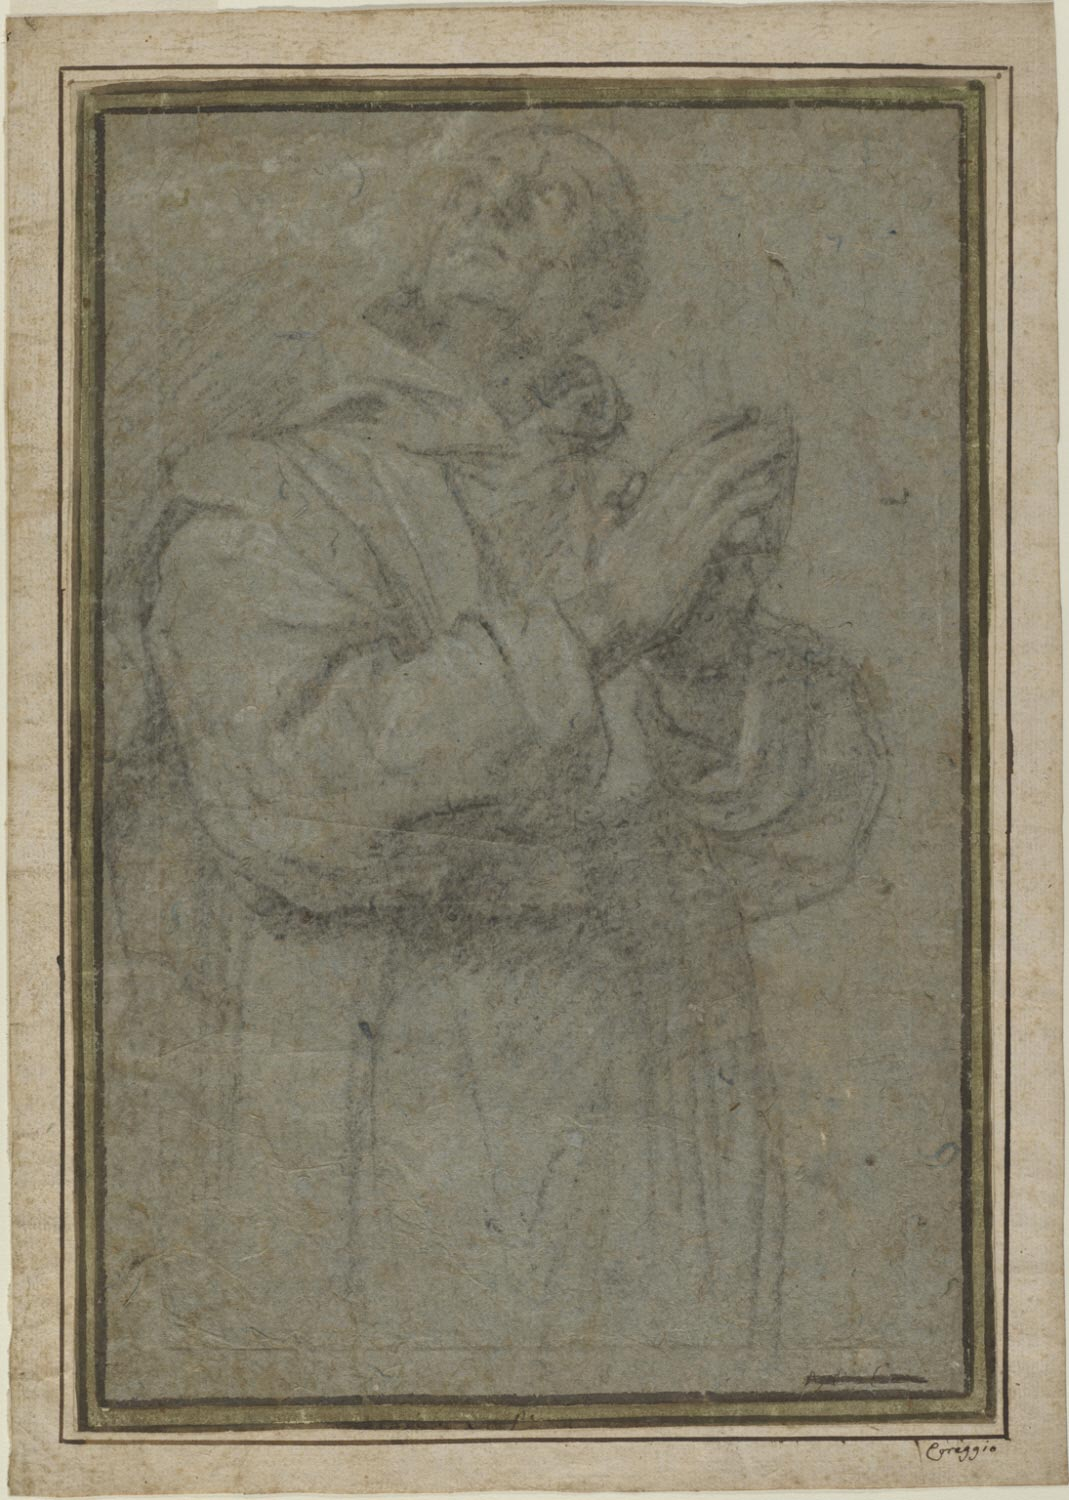 Carthusian Monk with His Hands Clasped in Prayer